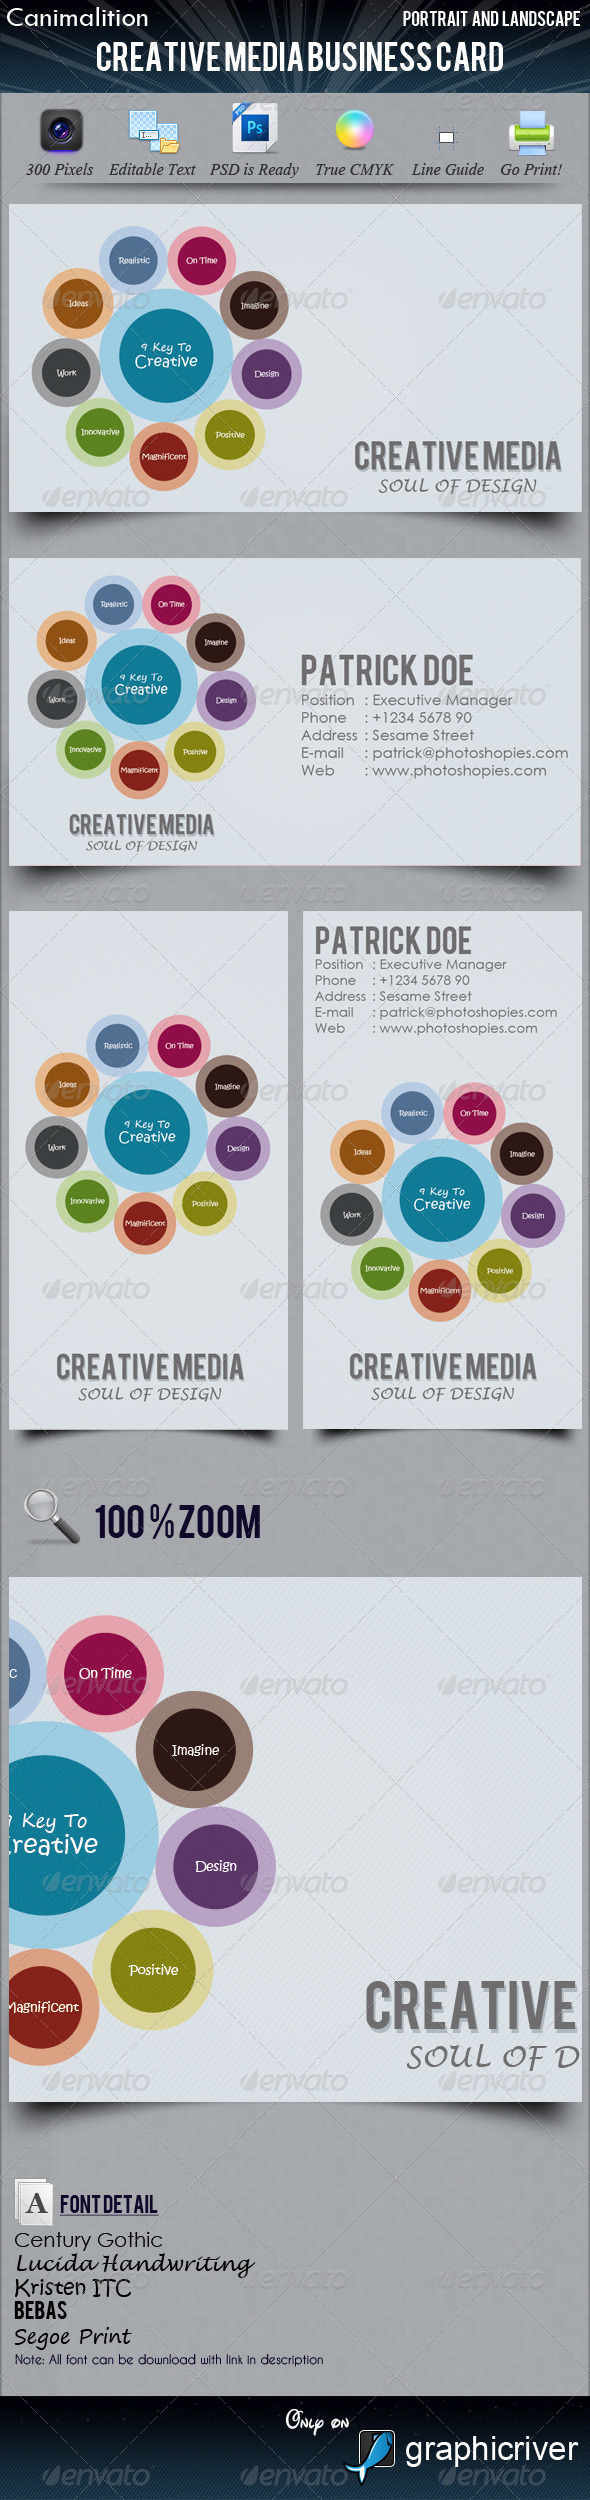 Creative Media Business Cards - Creative Business Cards